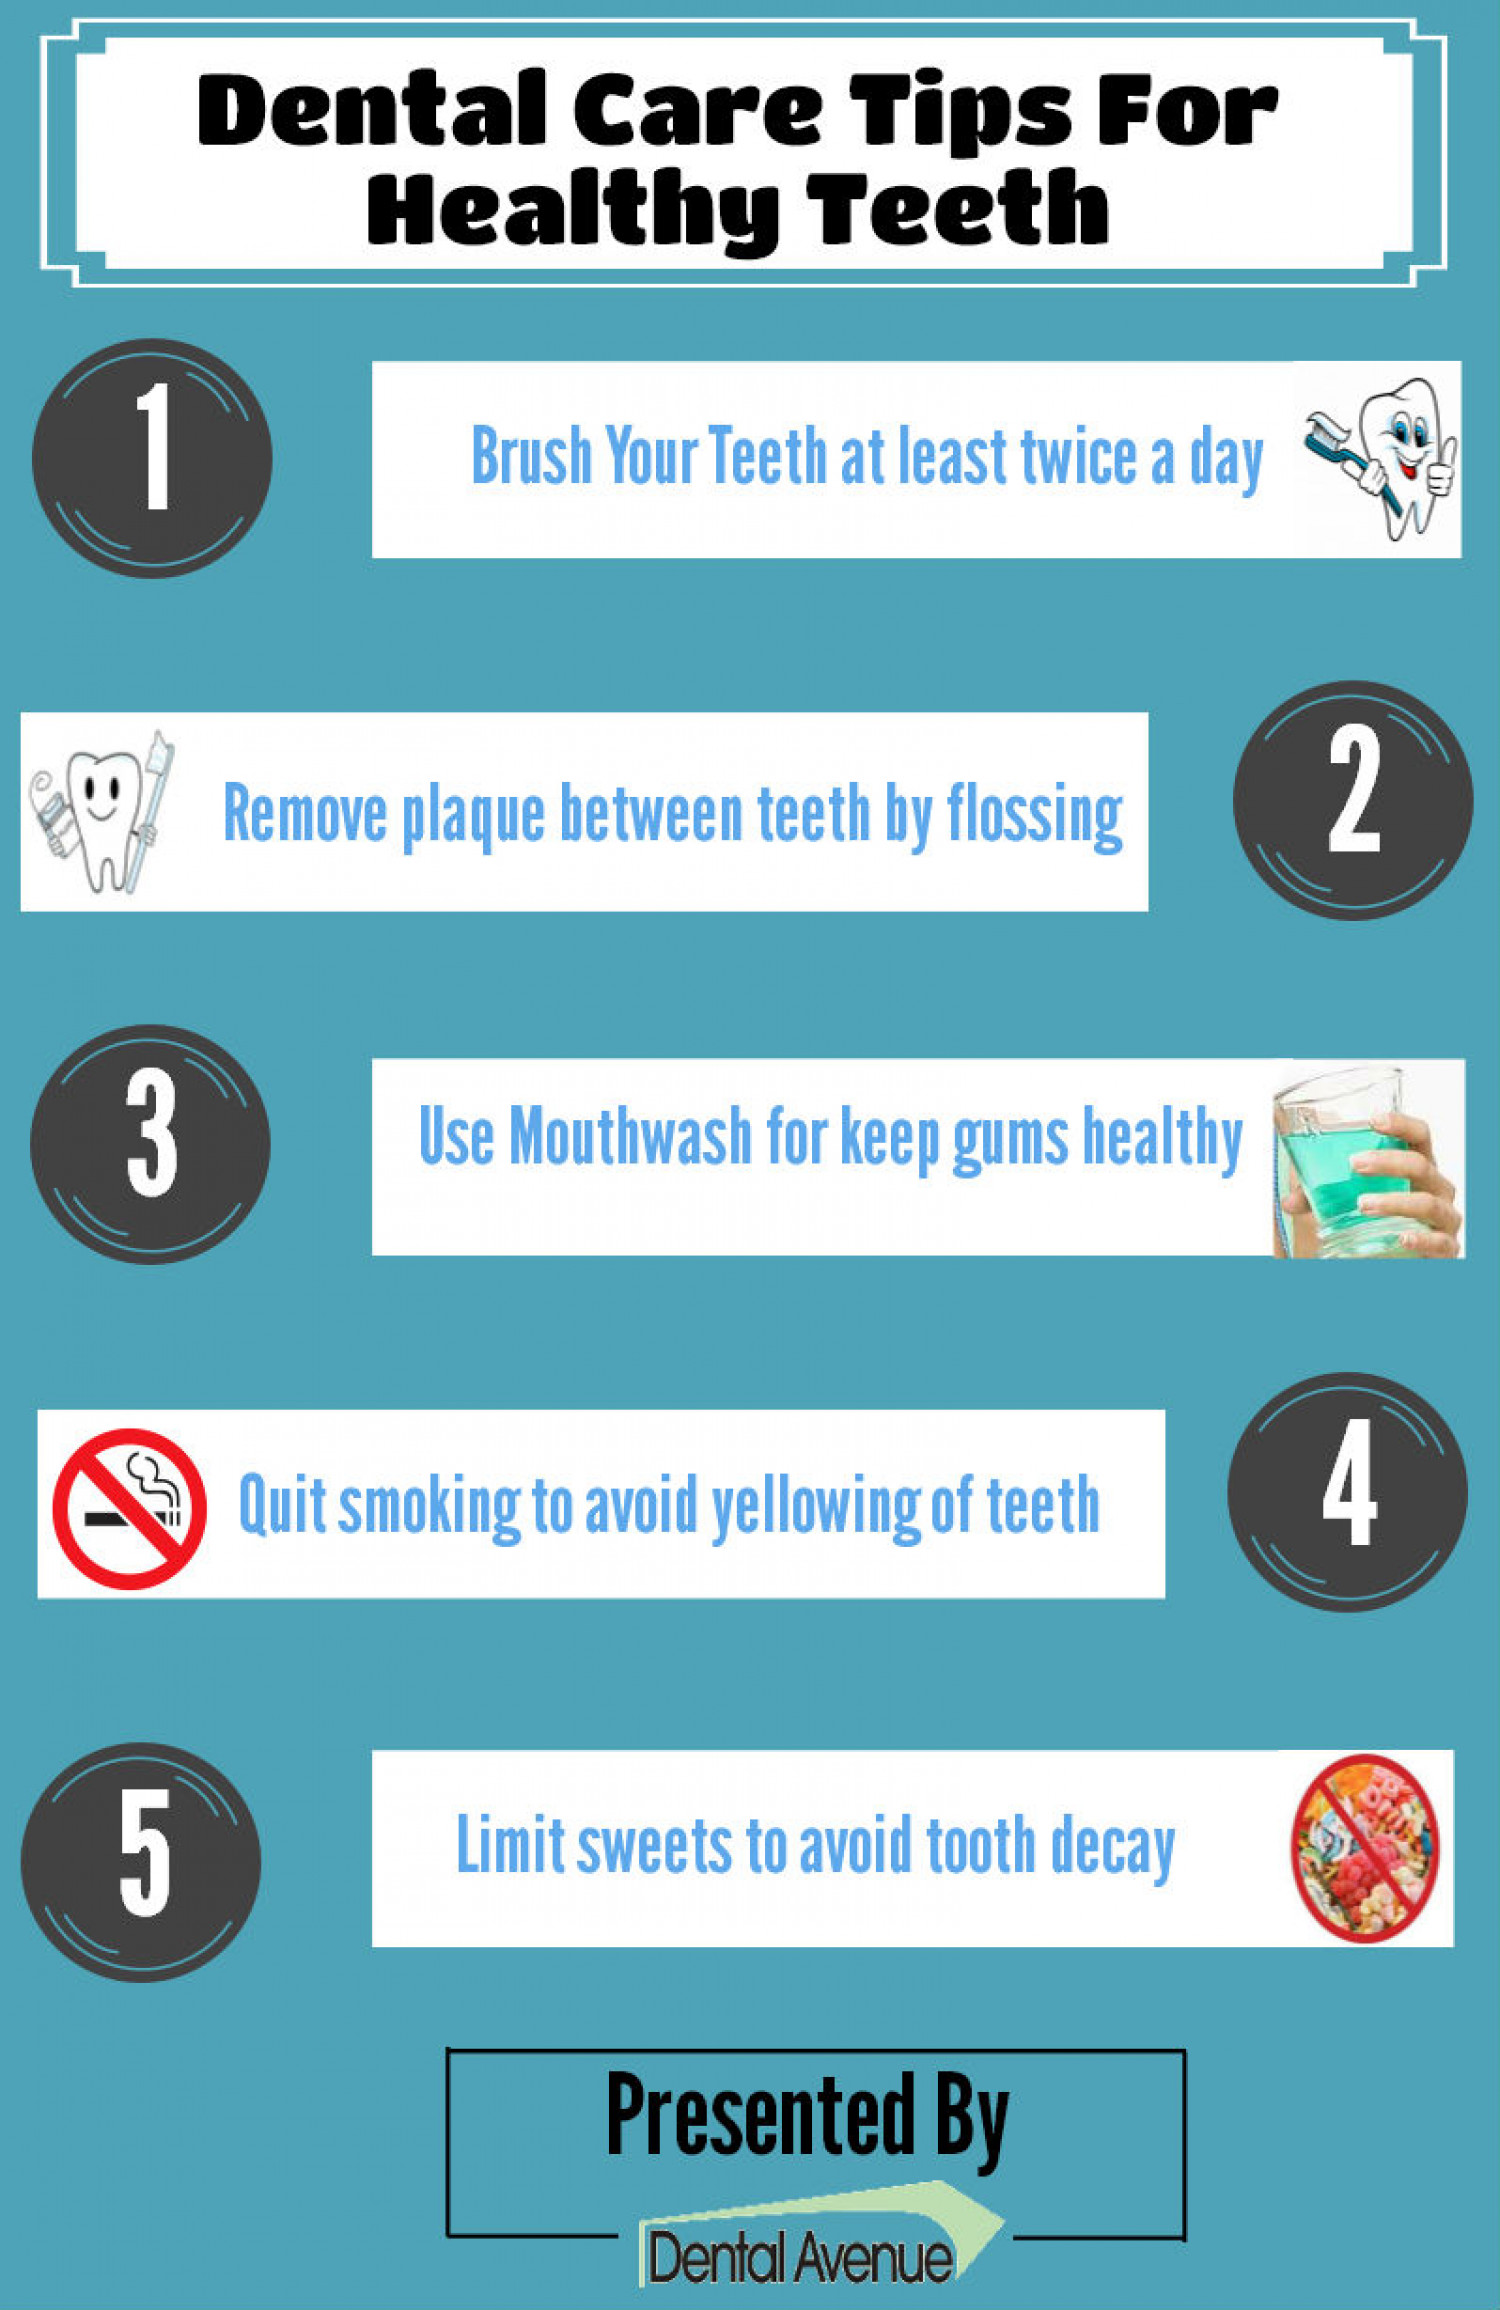 Dental Care Tips for Healthy Teeth | Visual.ly